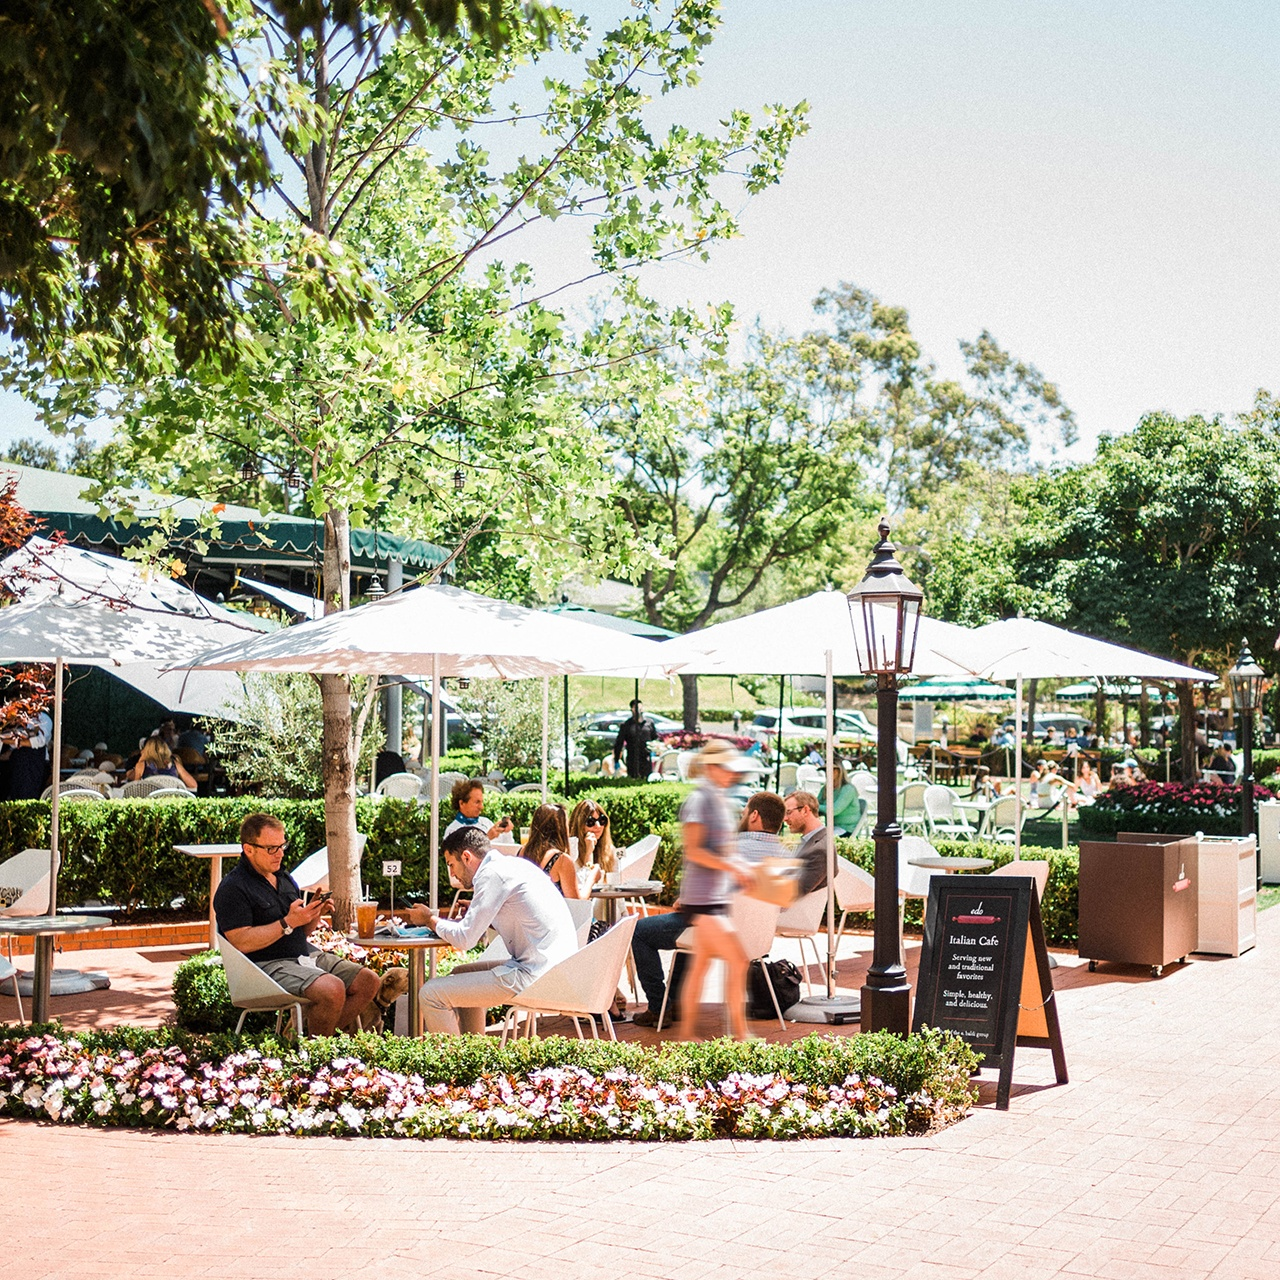 Map Out Mother's Day: Shop, Dine & Treat Her to the Best